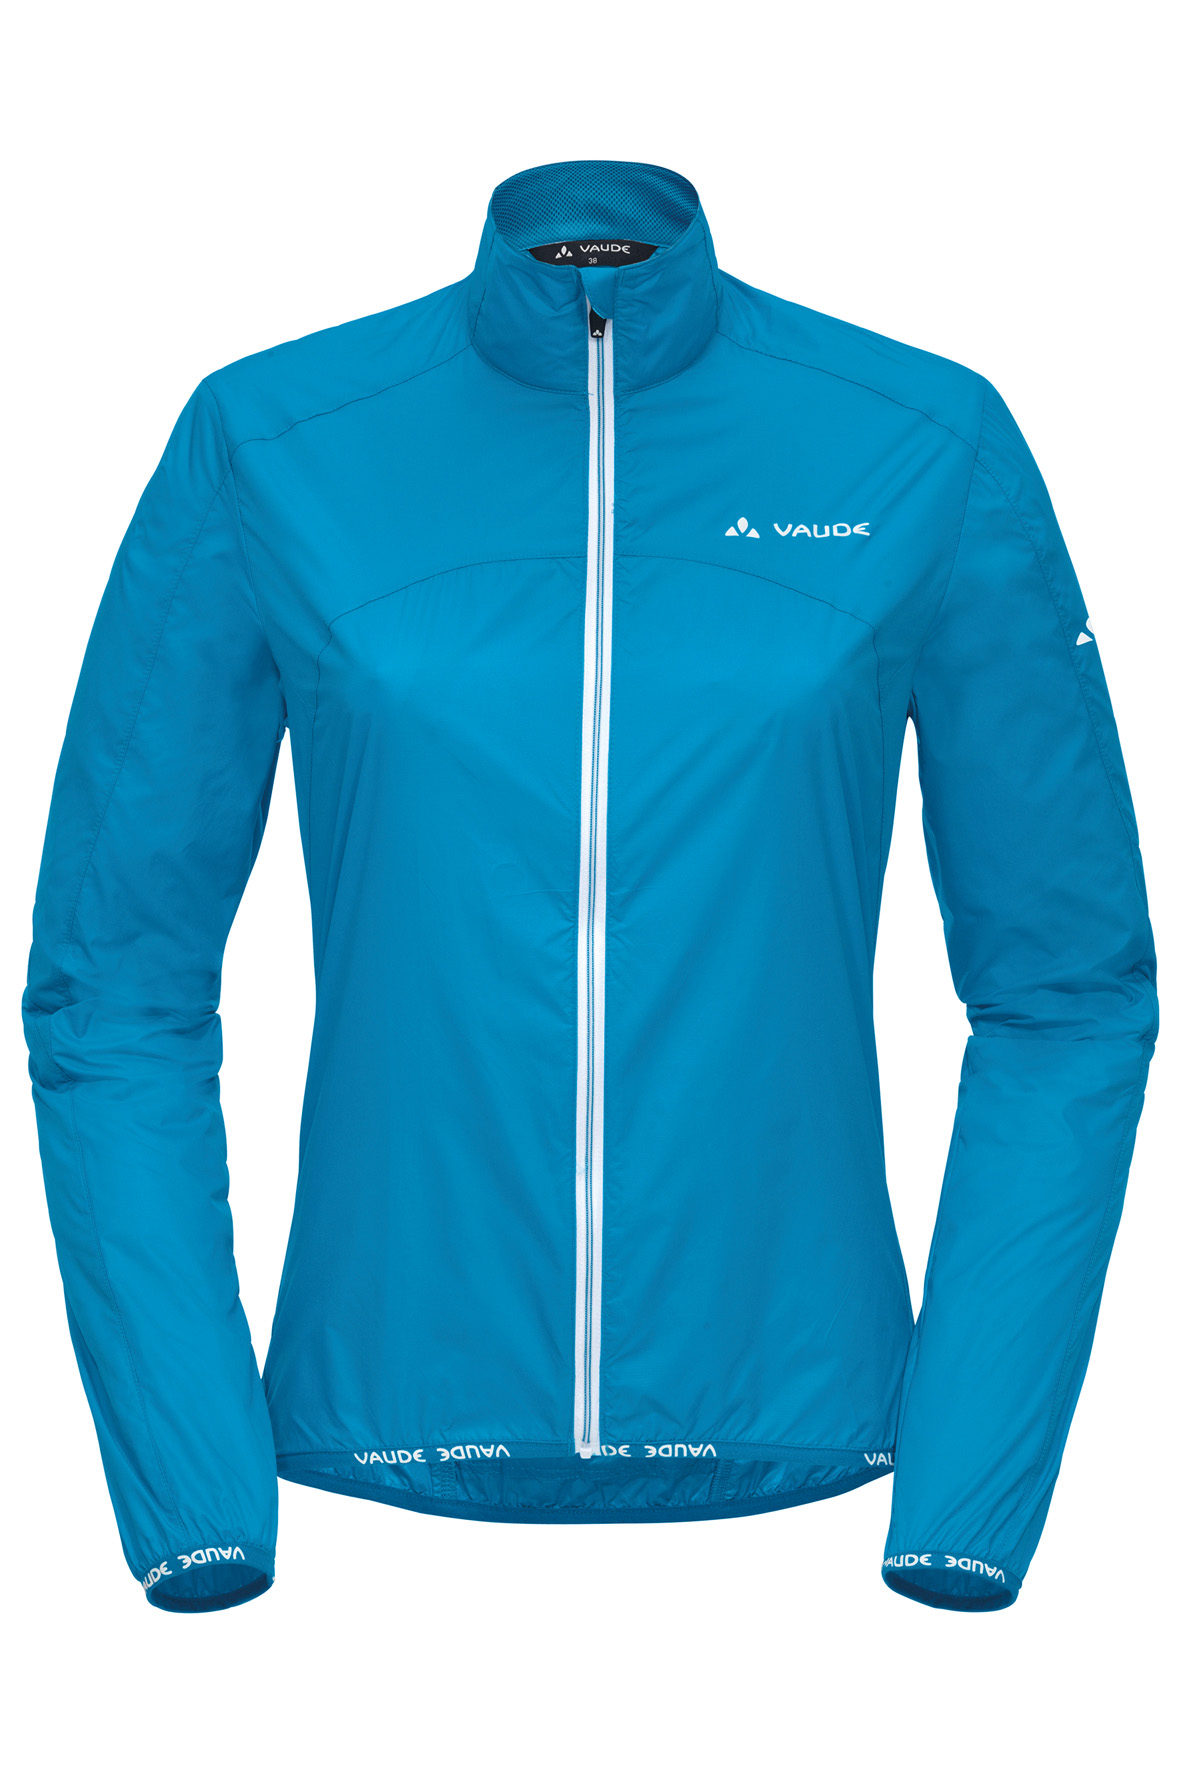 VAUDE Women´s Air Jacket II teal blue Größe 36 - schneider-sports